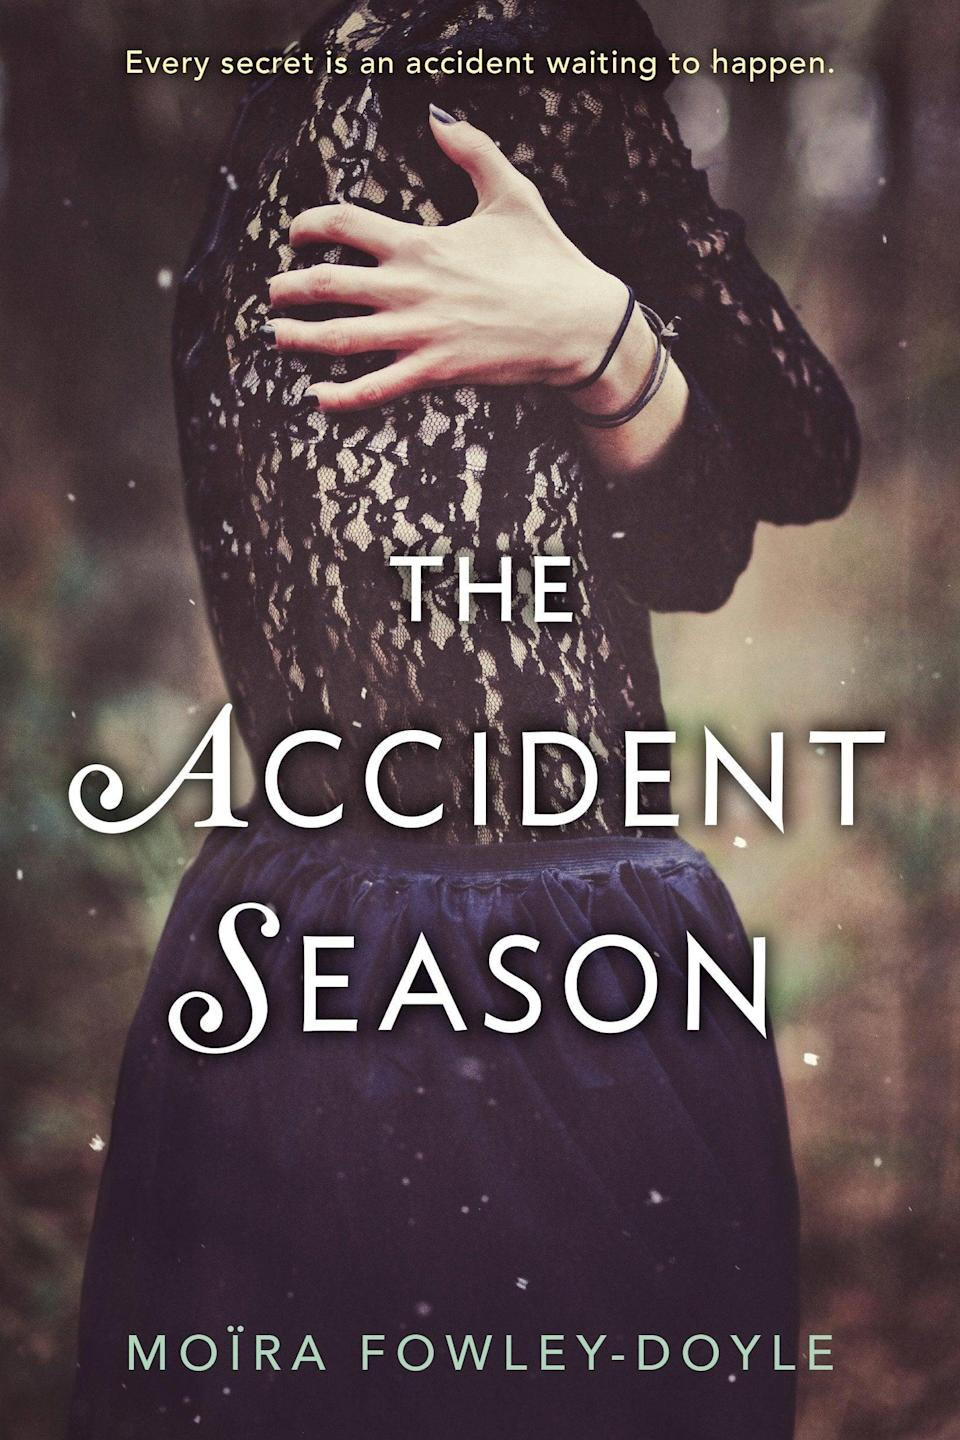 <p>Who says a cozy book can't also give you a case of the shivers? Moïra Fowley-Doyle's <span><strong>The Accident Season</strong></span> takes place during October, which is quite the dangerous month for 17-year-old Cara and her family. Each year, the family is plagued with accidents - some minor and some deadly - throughout the month of October, and this year, Cara is determined to find out why, no matter the cost.</p>